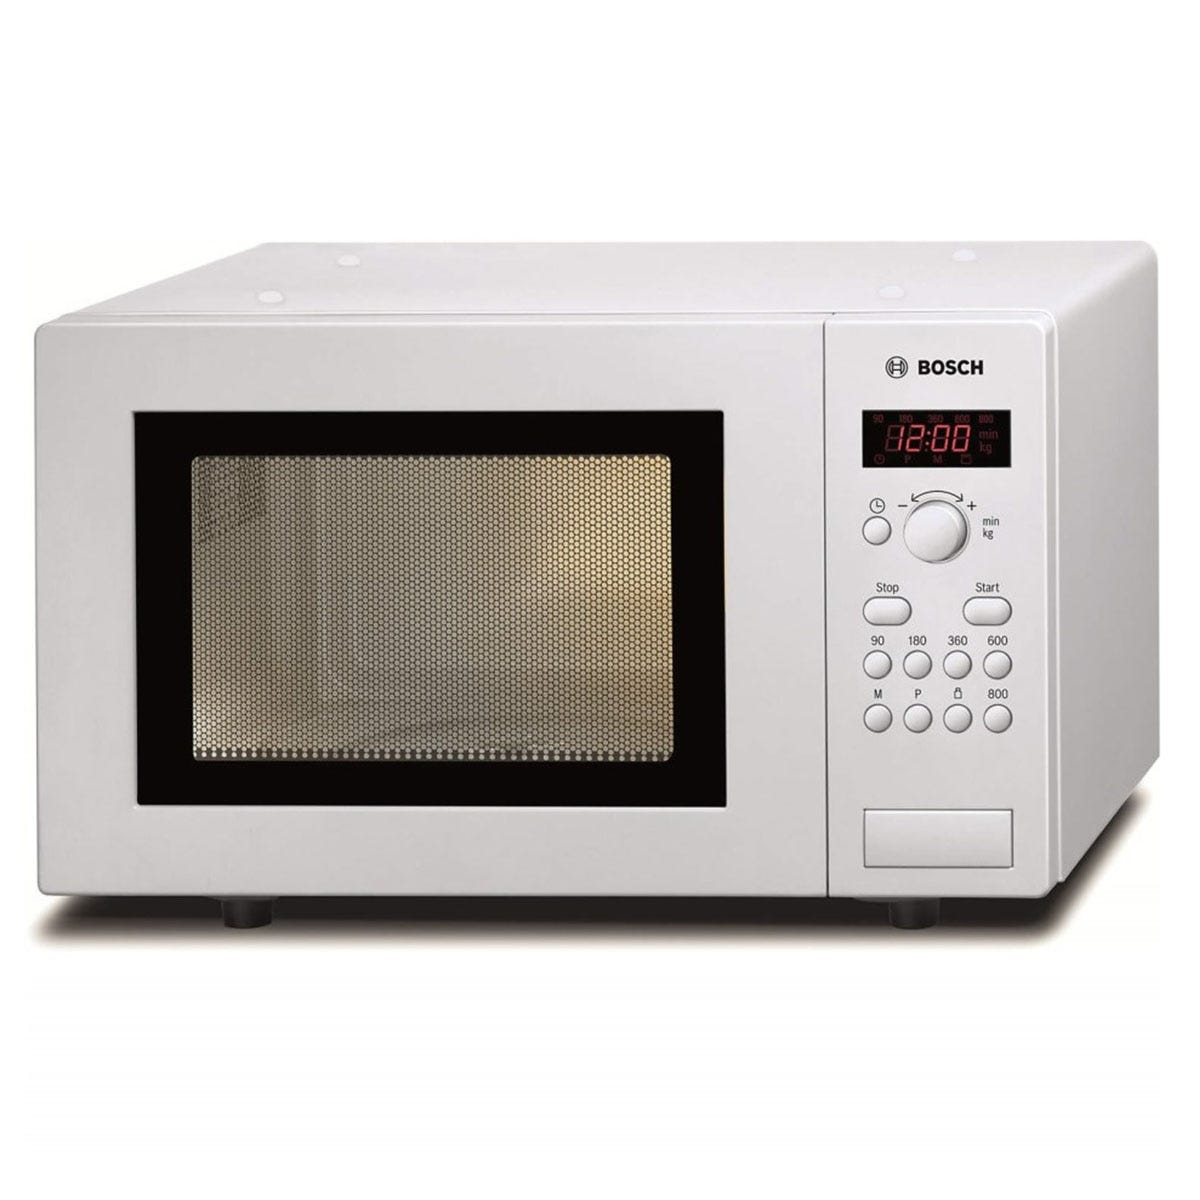 Bosch HMT75M421B Compact Touch Control Microwave Oven - White